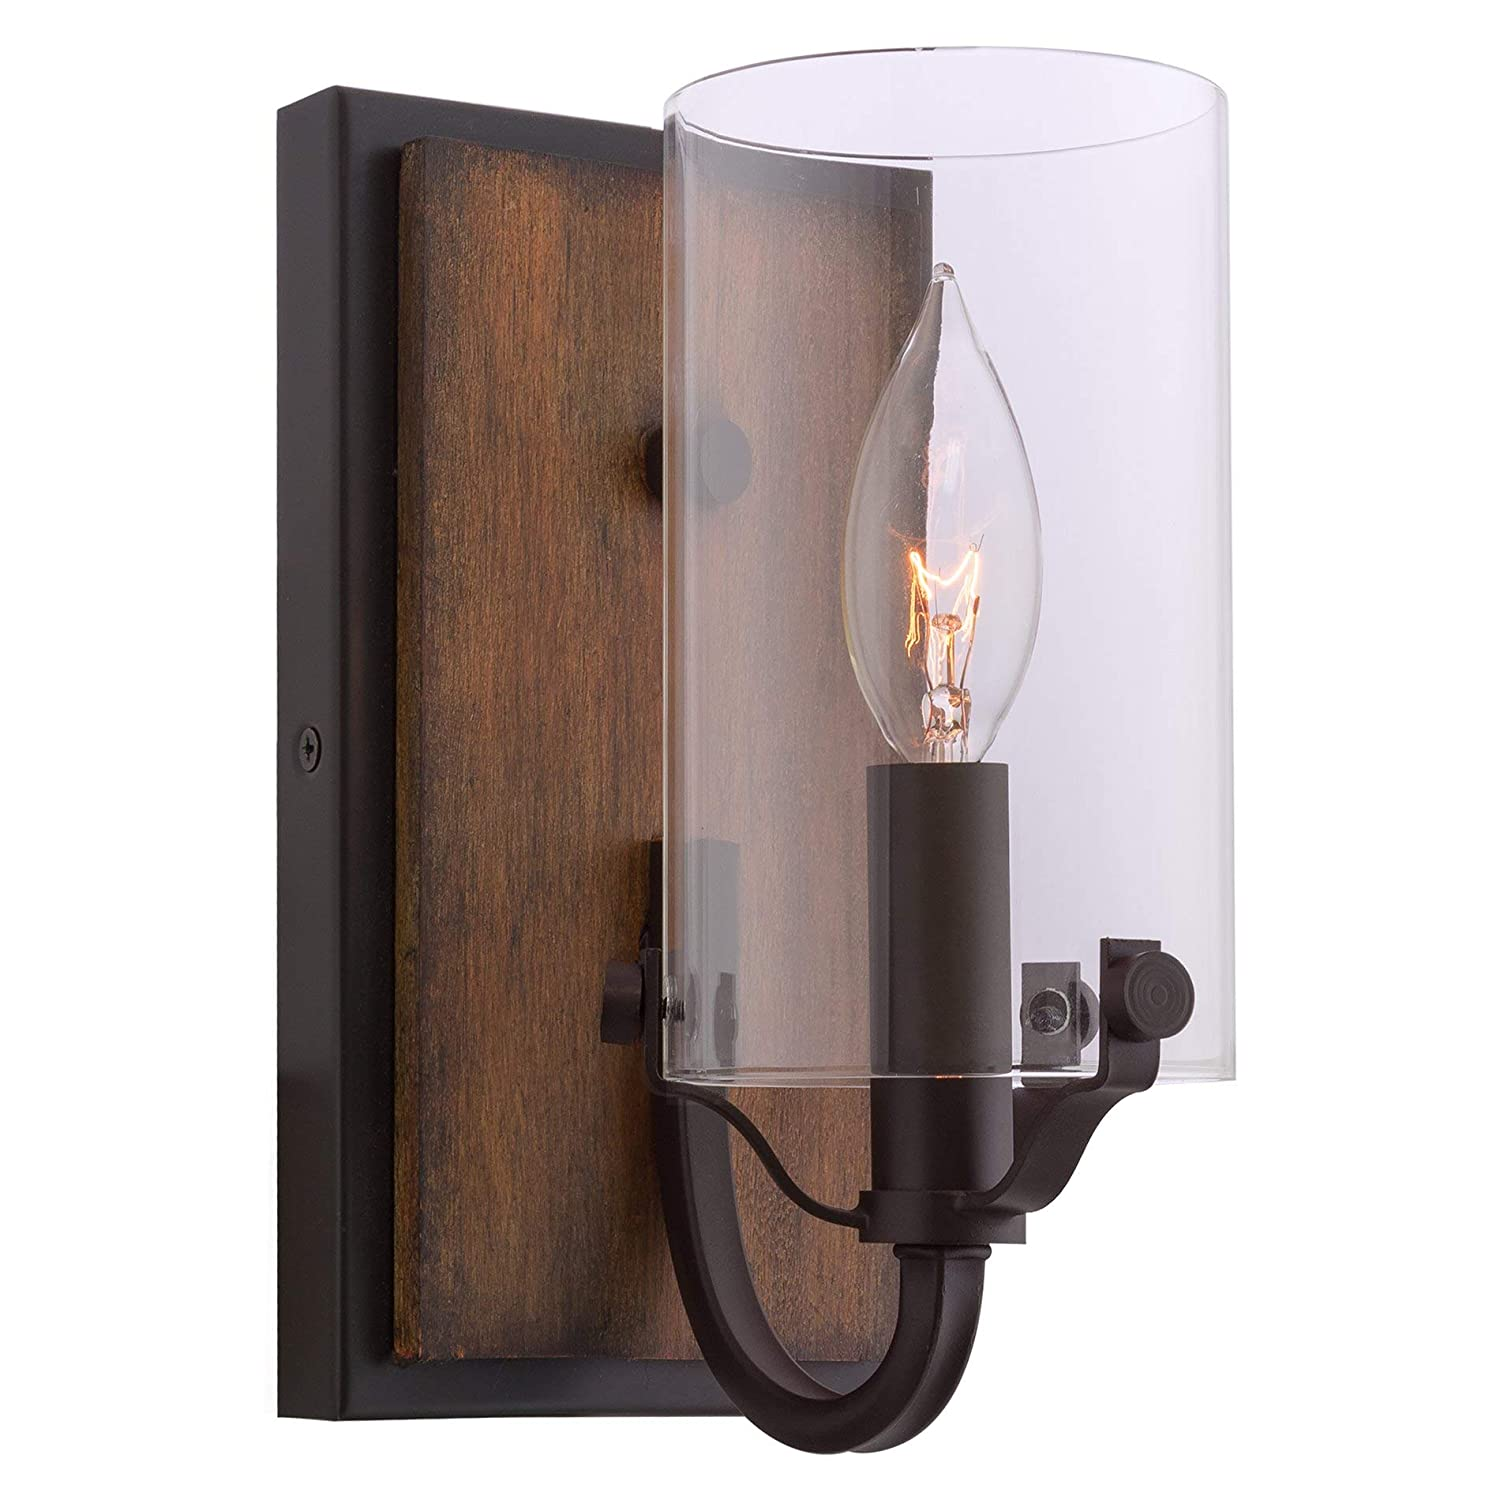 """Kira Home Aspen 9"""" Transitional Wall Sconce, Clear Glass Cylinder Shade, Oil Rubbed Bronze + Wood Finish"""